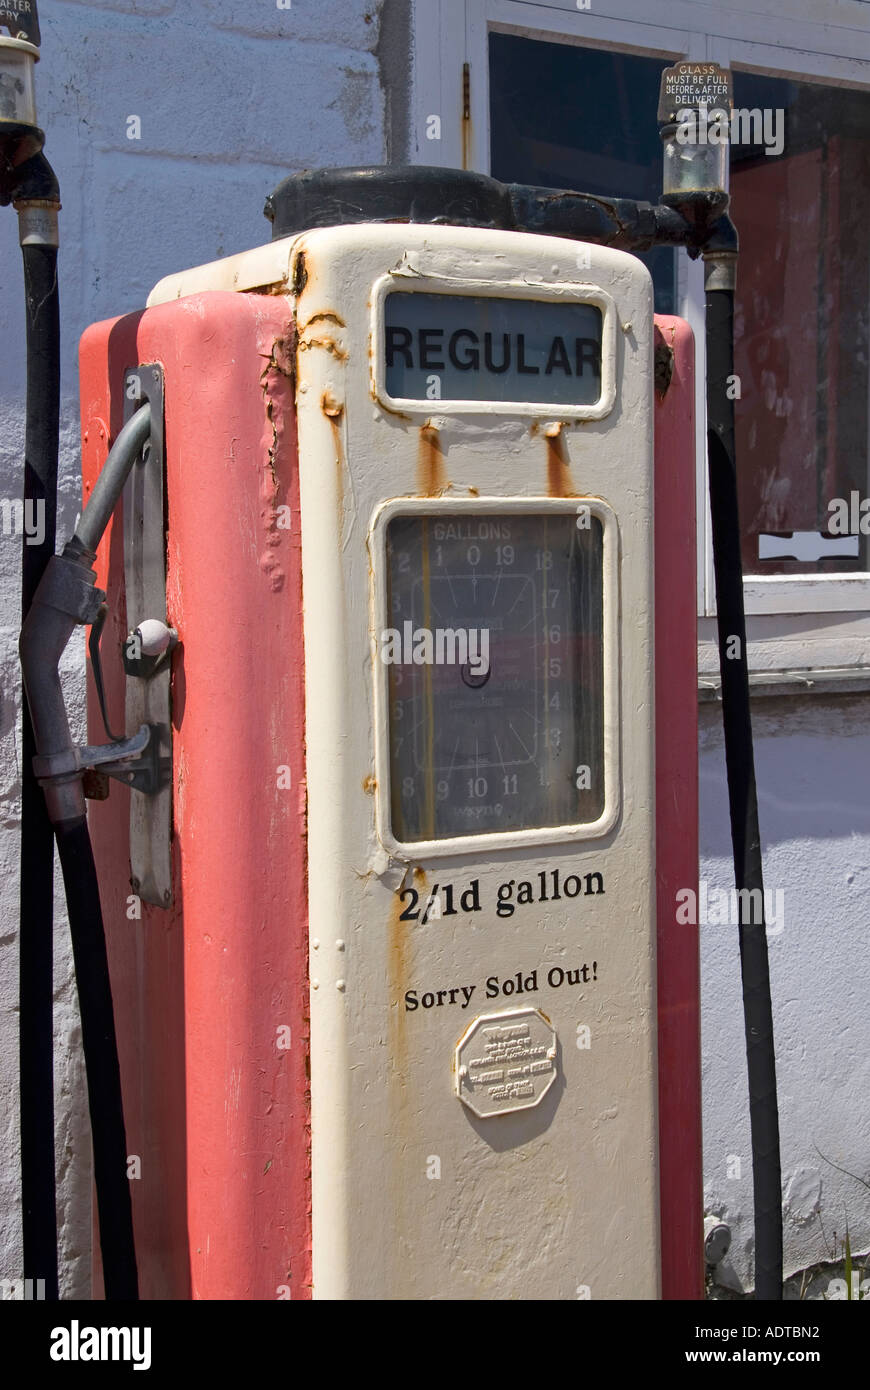 St Mawes one time petrol filling station still retains old petrol pump displaying old shilling penny prices and sold out notice - Stock Image